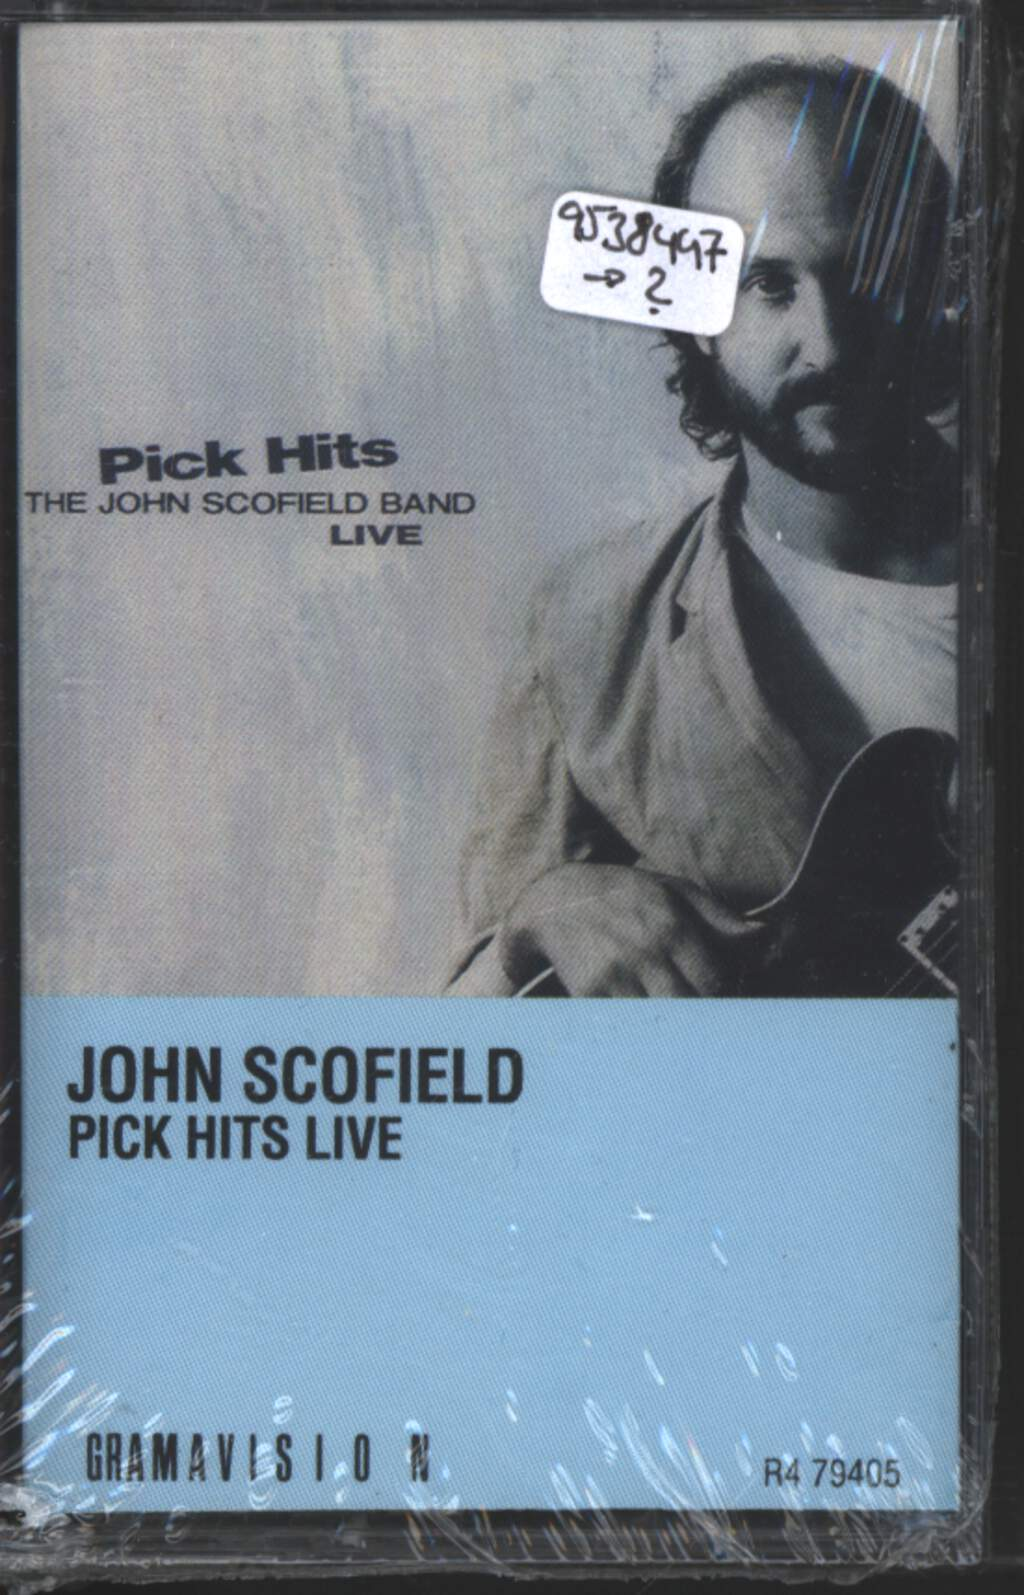 John Scofield: Pick Hits Live, Tape